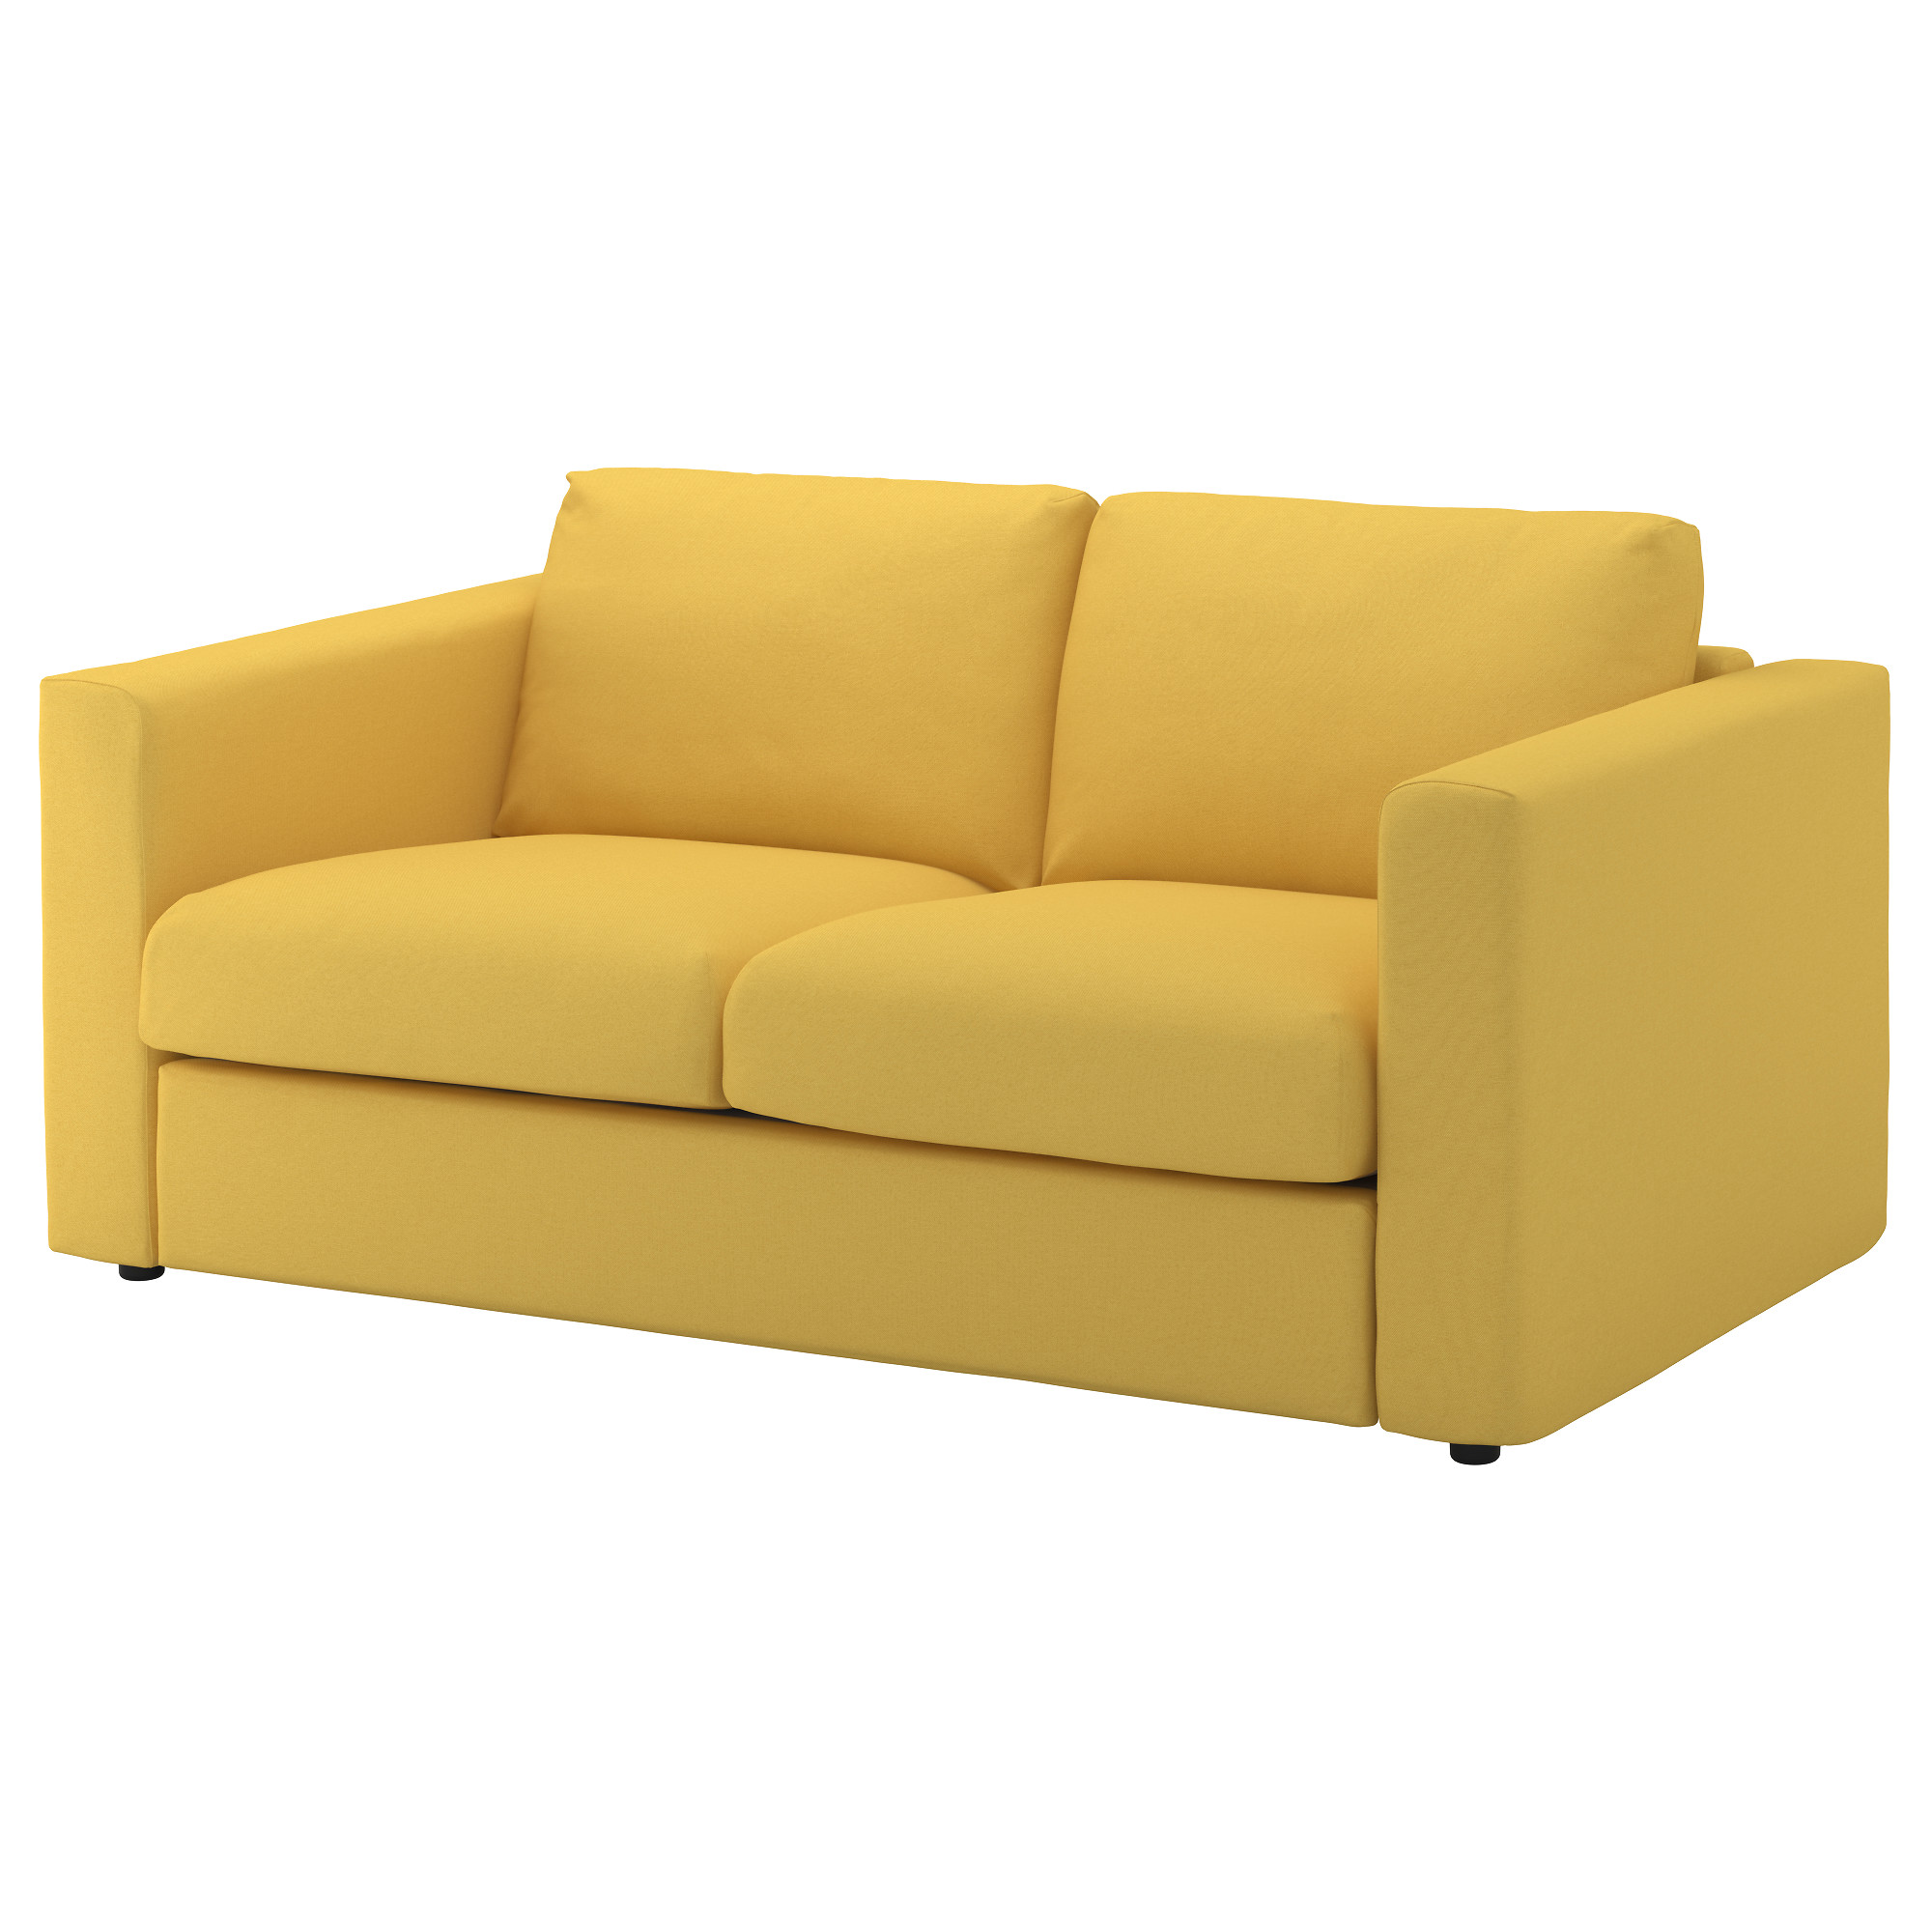 Loveseat Couch 13 Wonderful Love Seat Sleeper Sofas